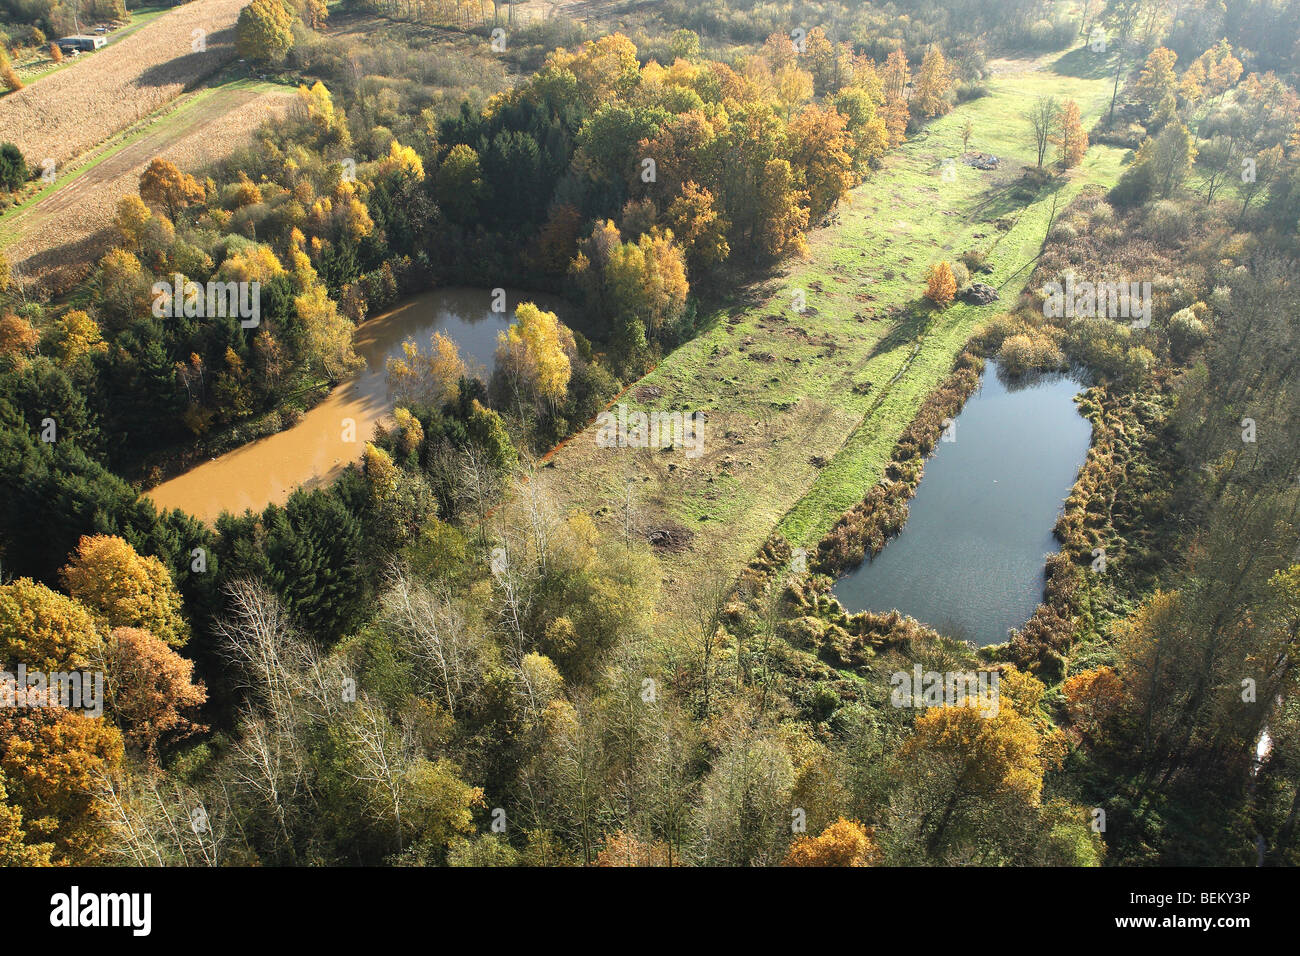 Mixed forest with Oak (Quercus robur), Birches (Betula sp.) and pool in autumn from the air, Belgium - Stock Image